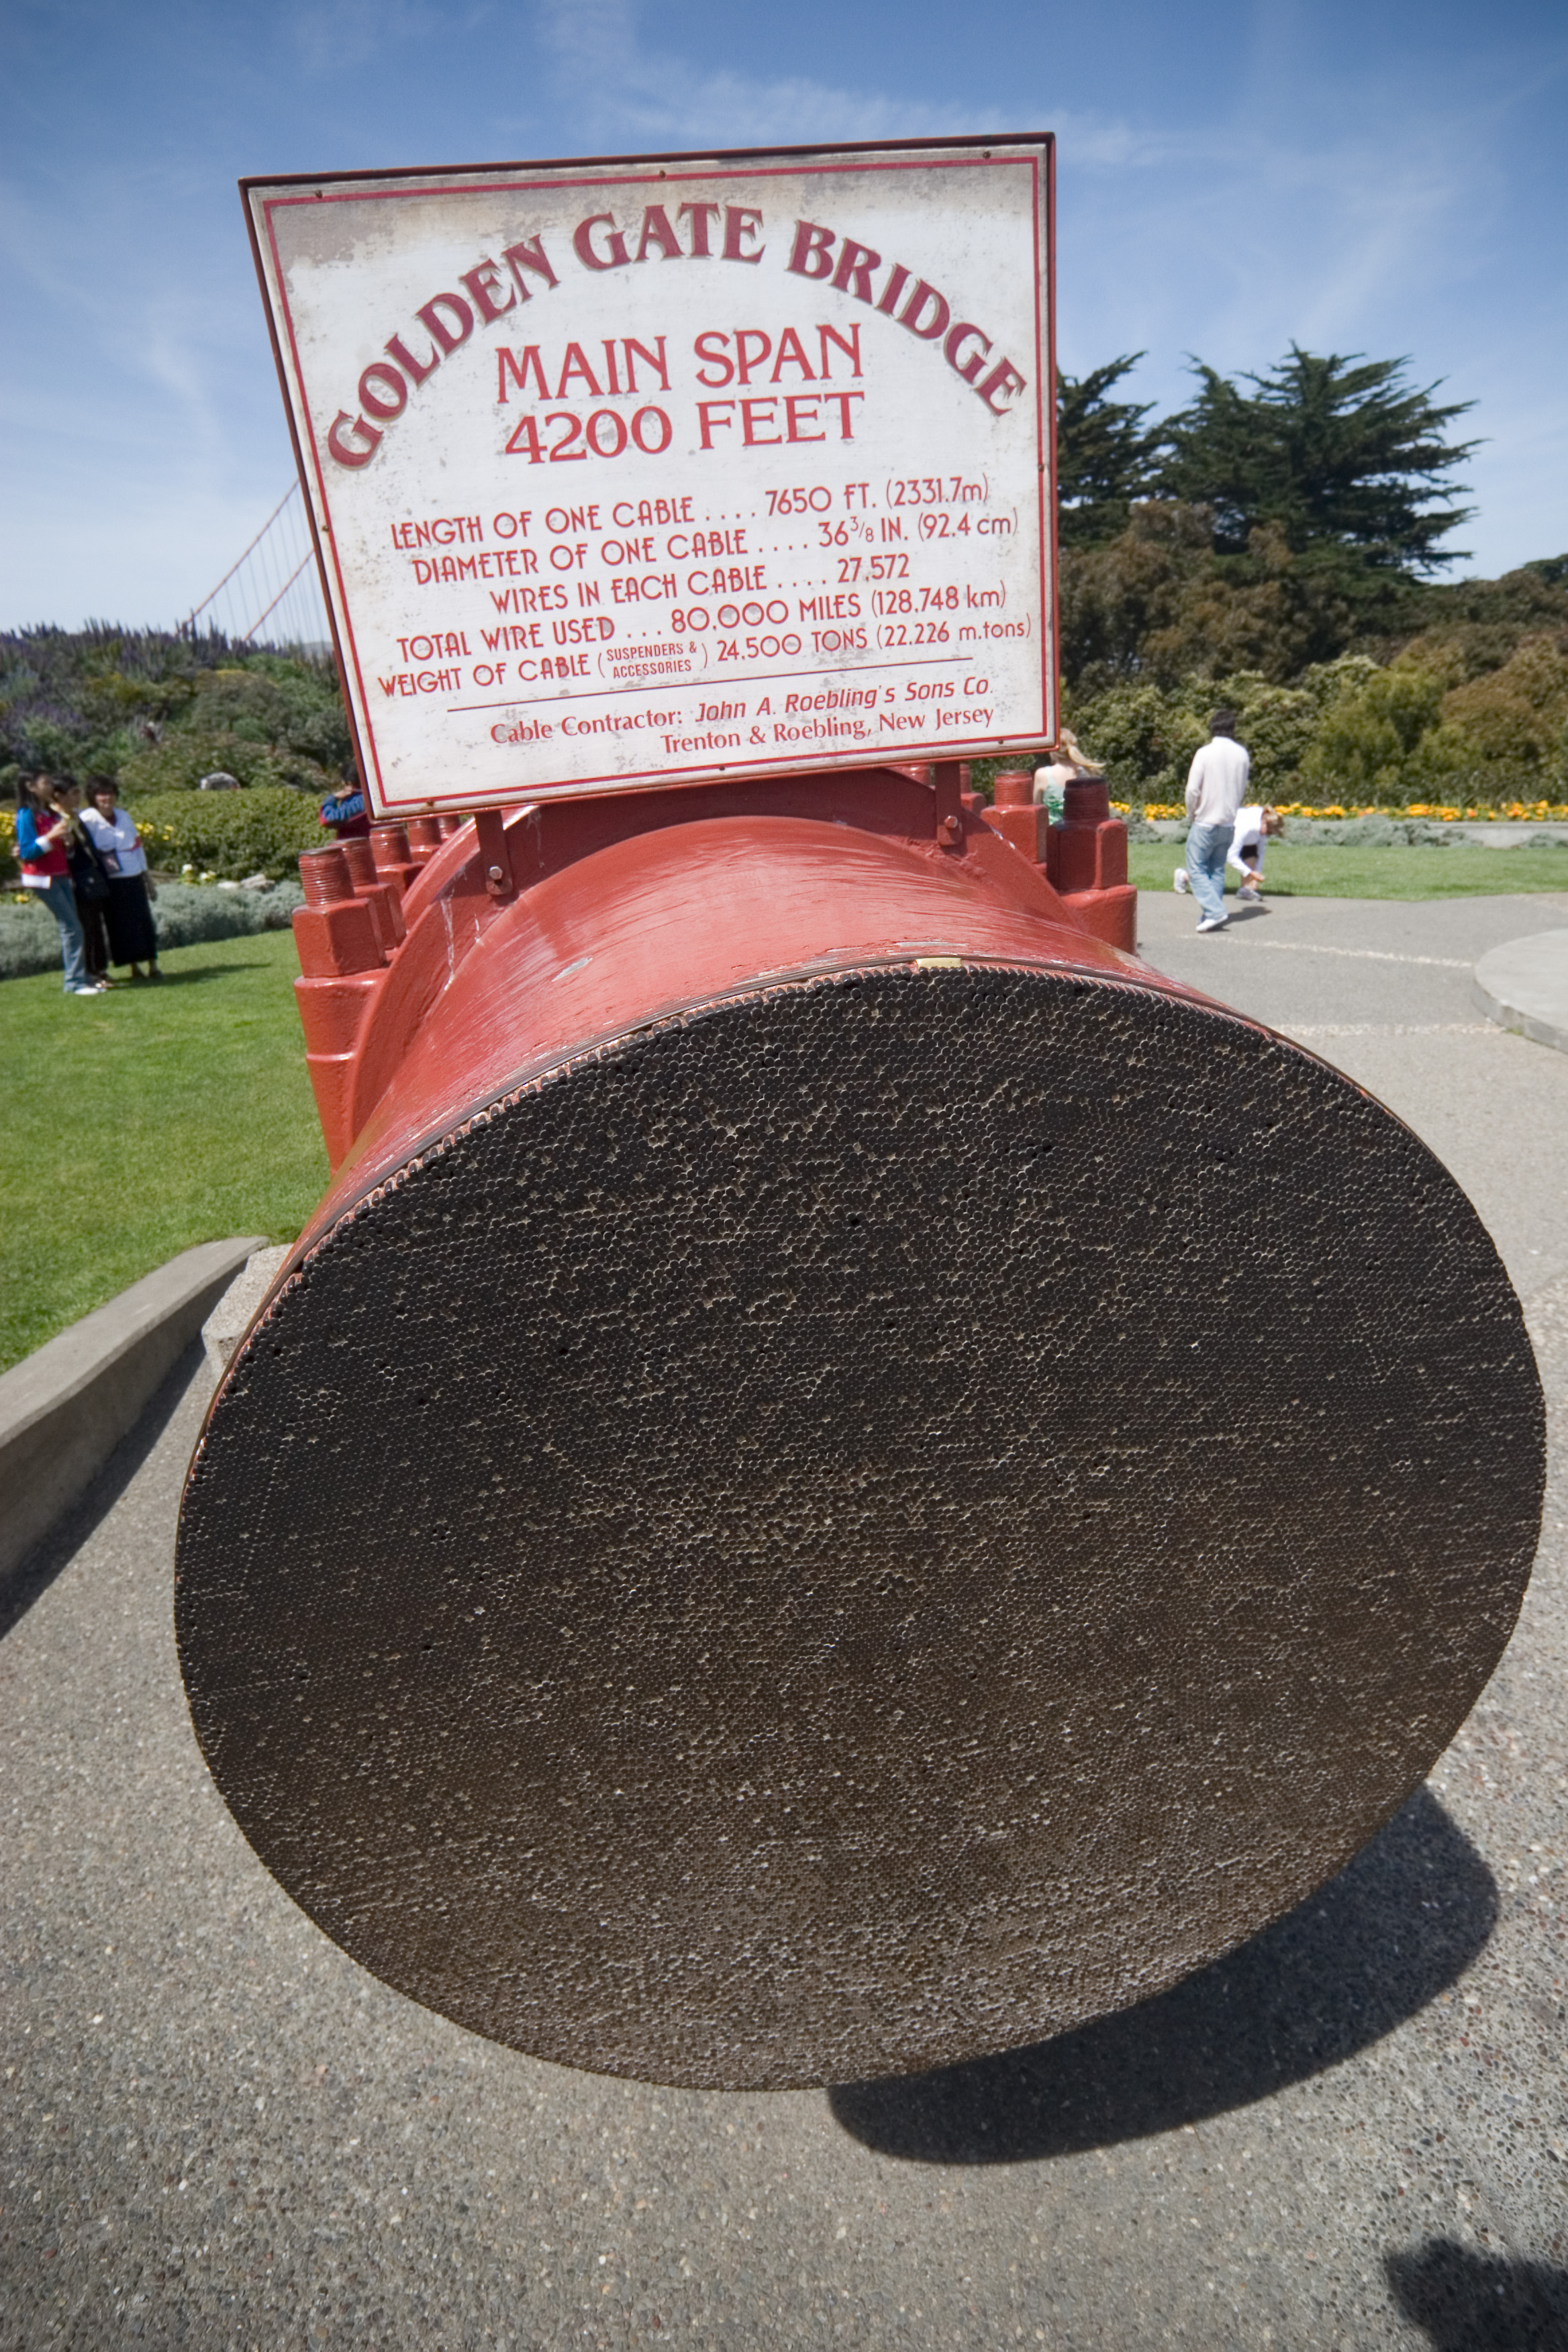 On the south side of the bridge, a 36.5 inch (93 cm) wide cross-section of the cable, containing 27,572 separate wires, is on display.